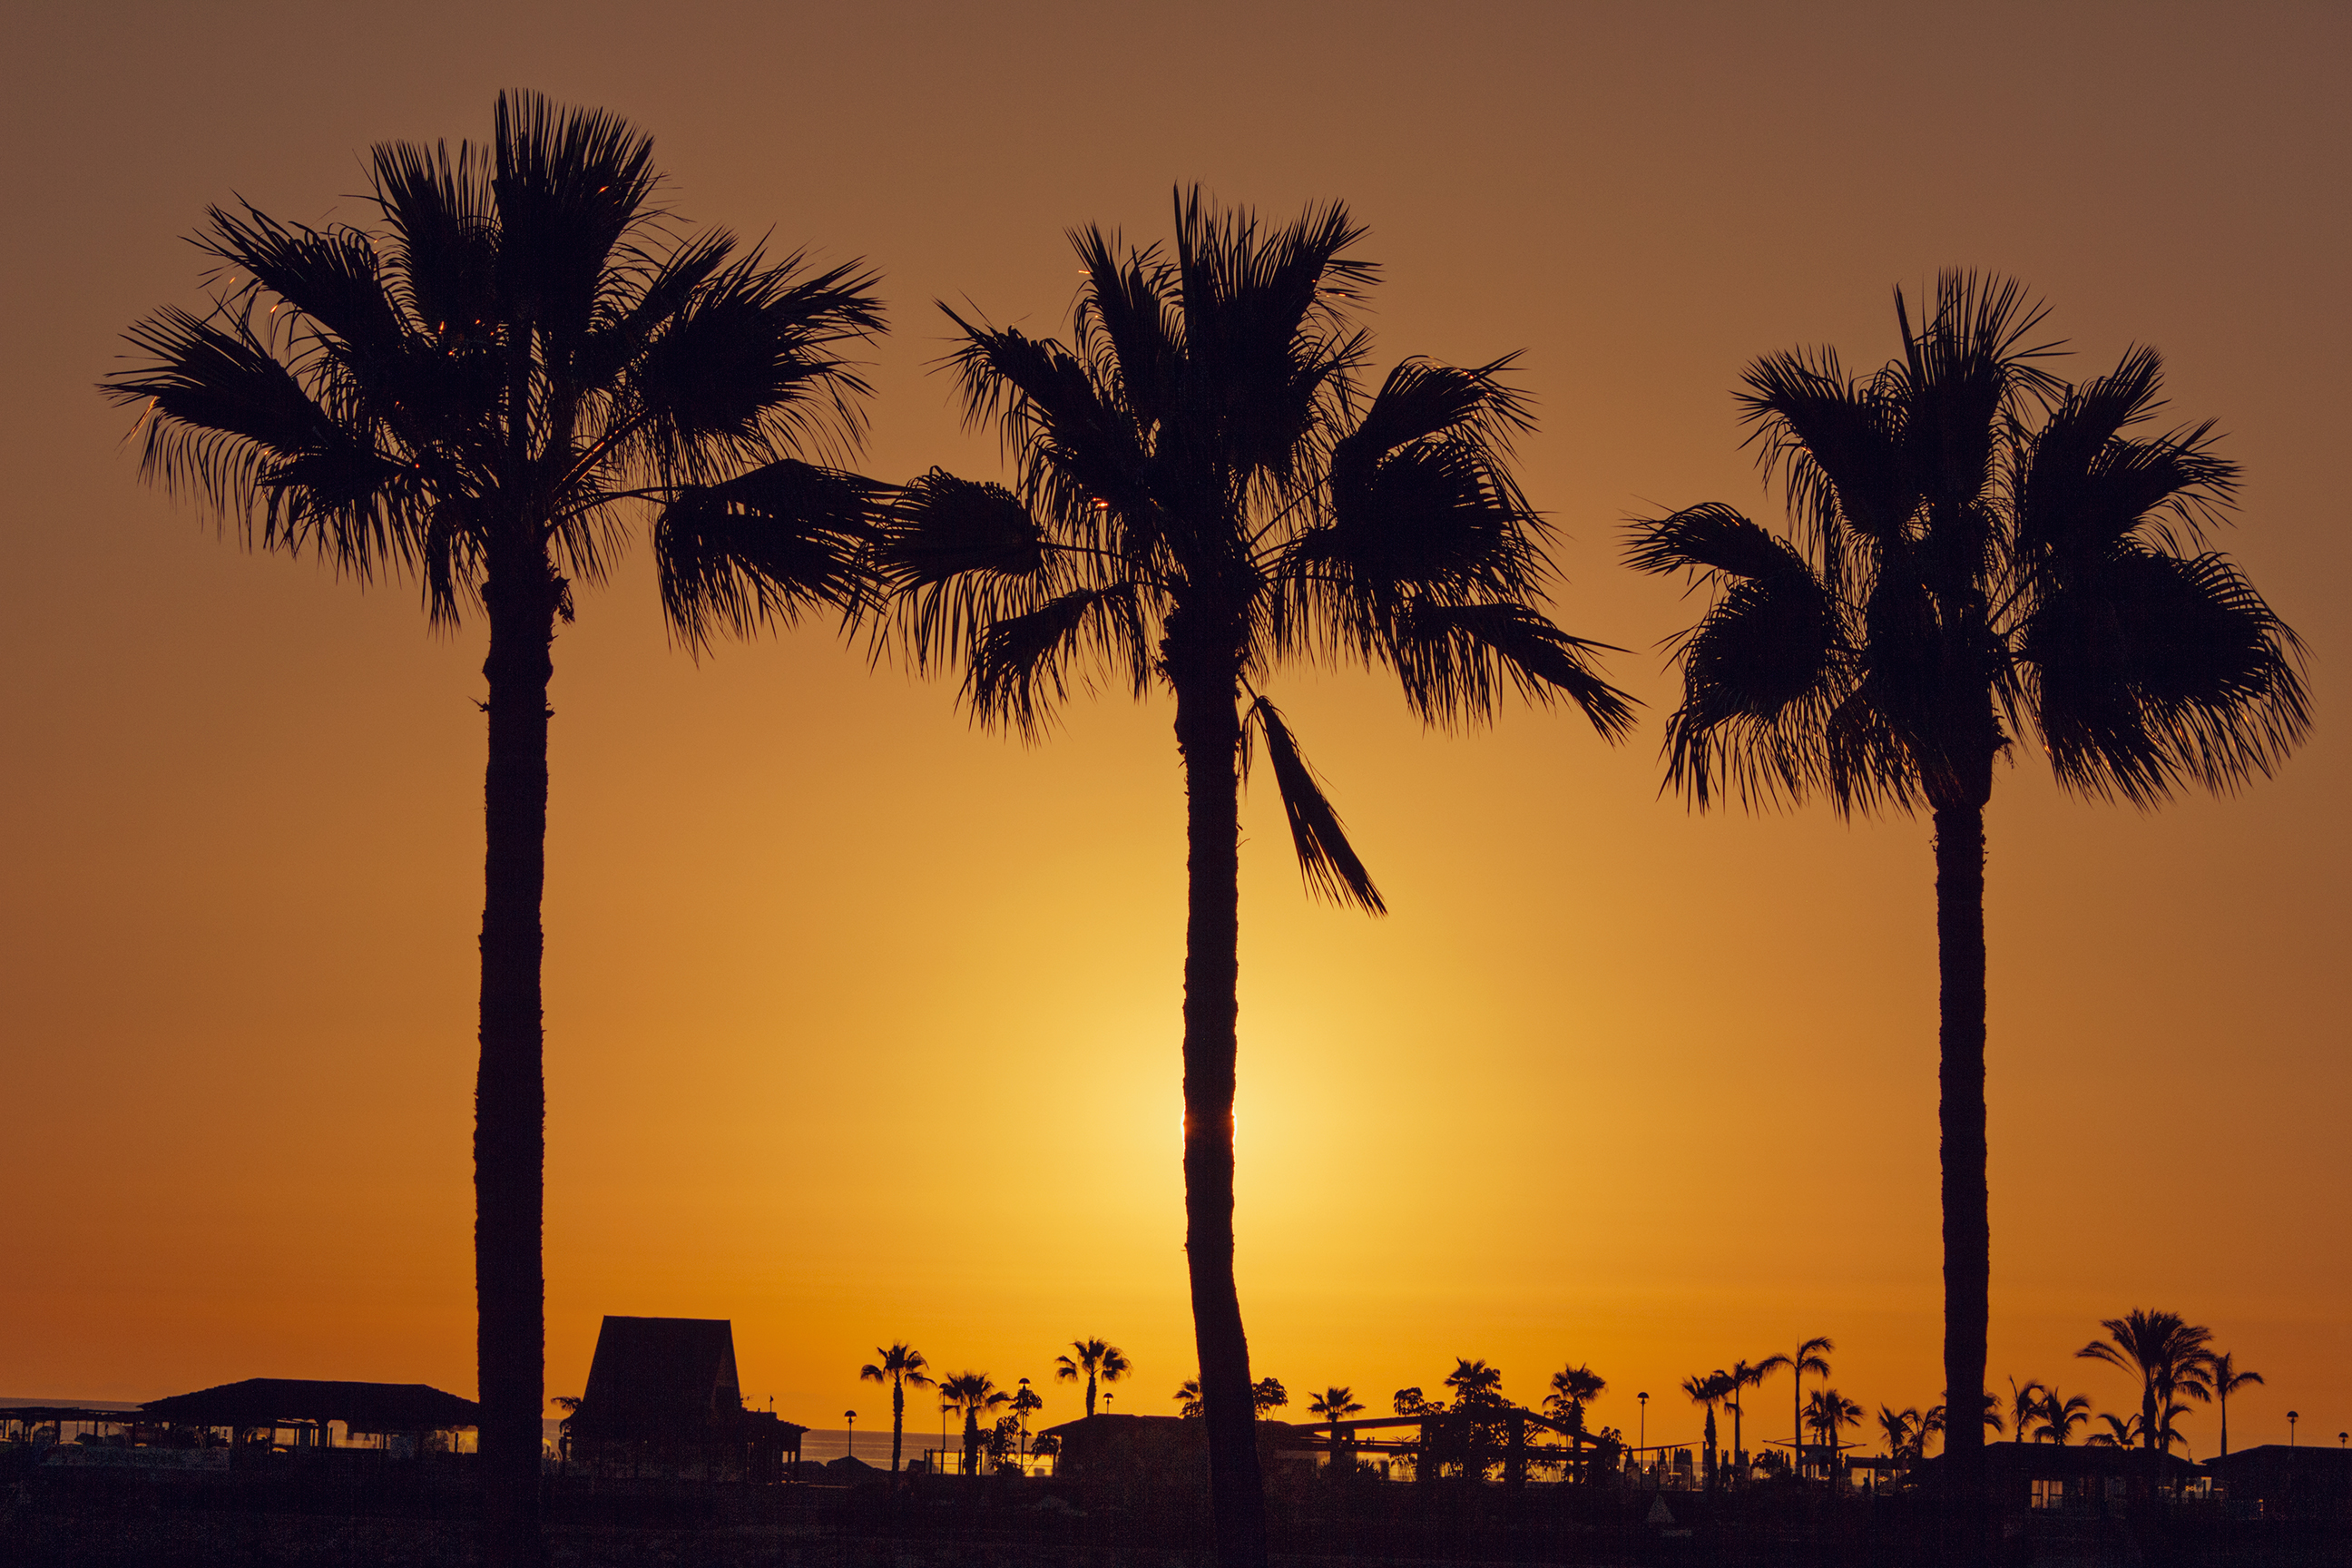 Silhouette Palm Trees on Beach Against Sky · Free Stock Photo